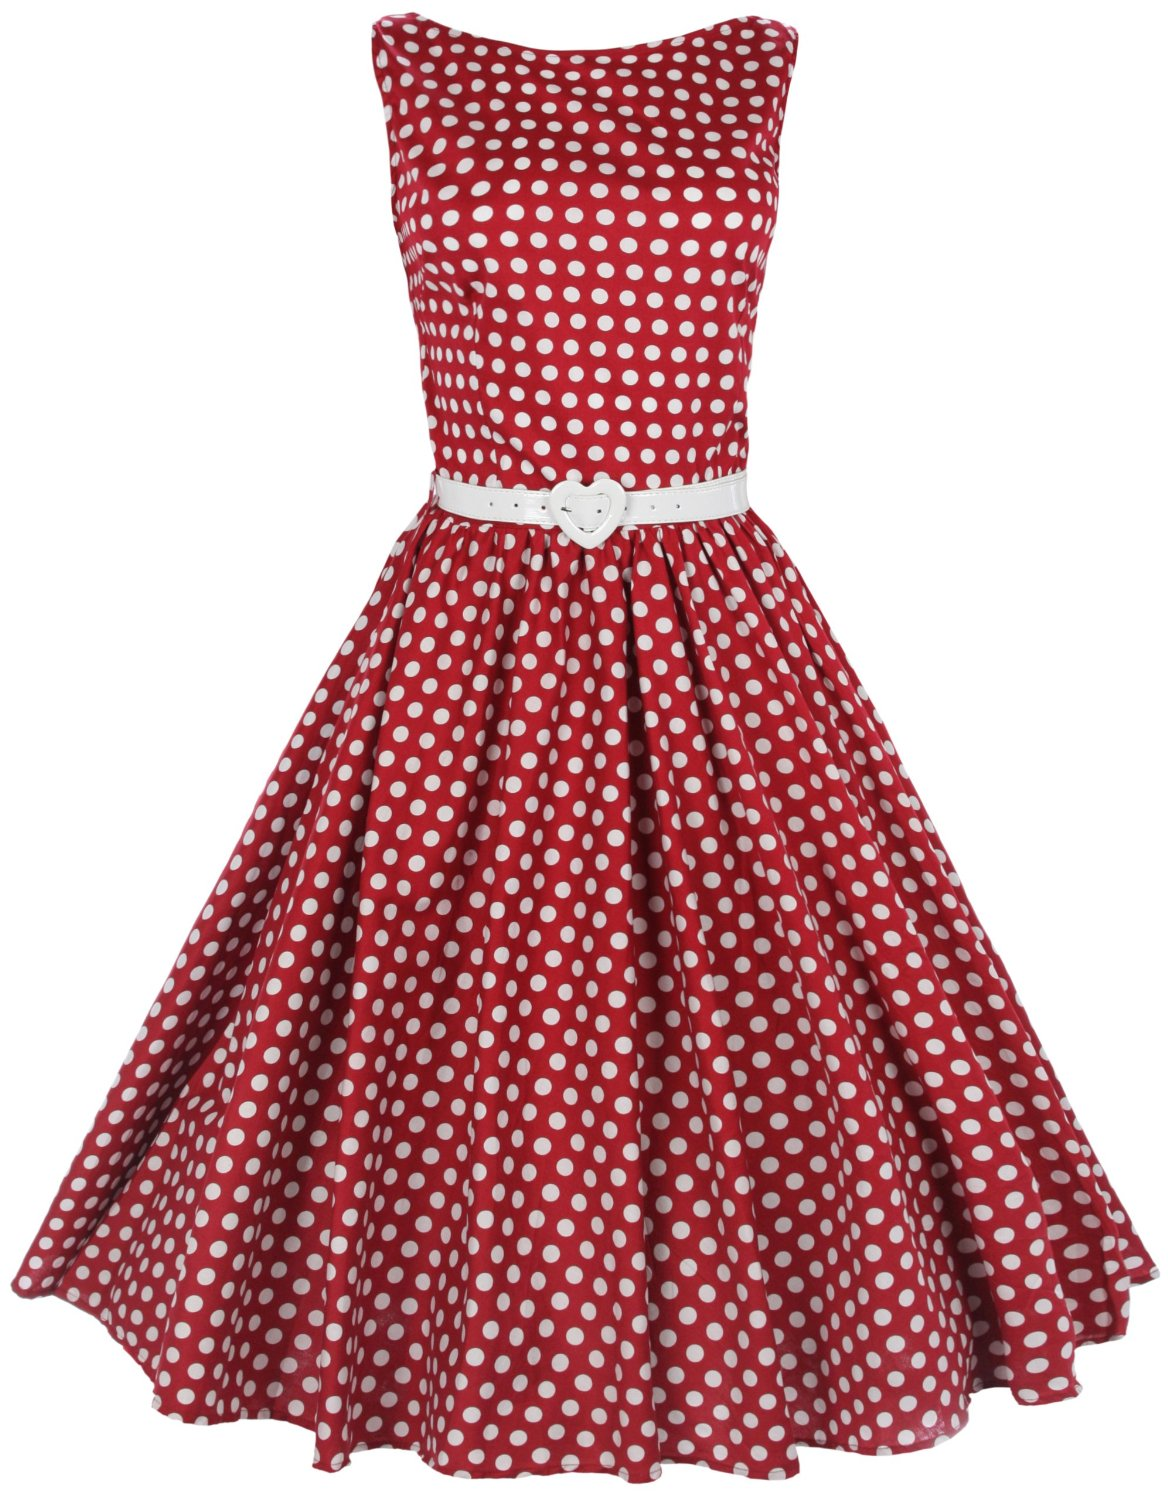 Retro Red Dress with Dots 101.66 Kb